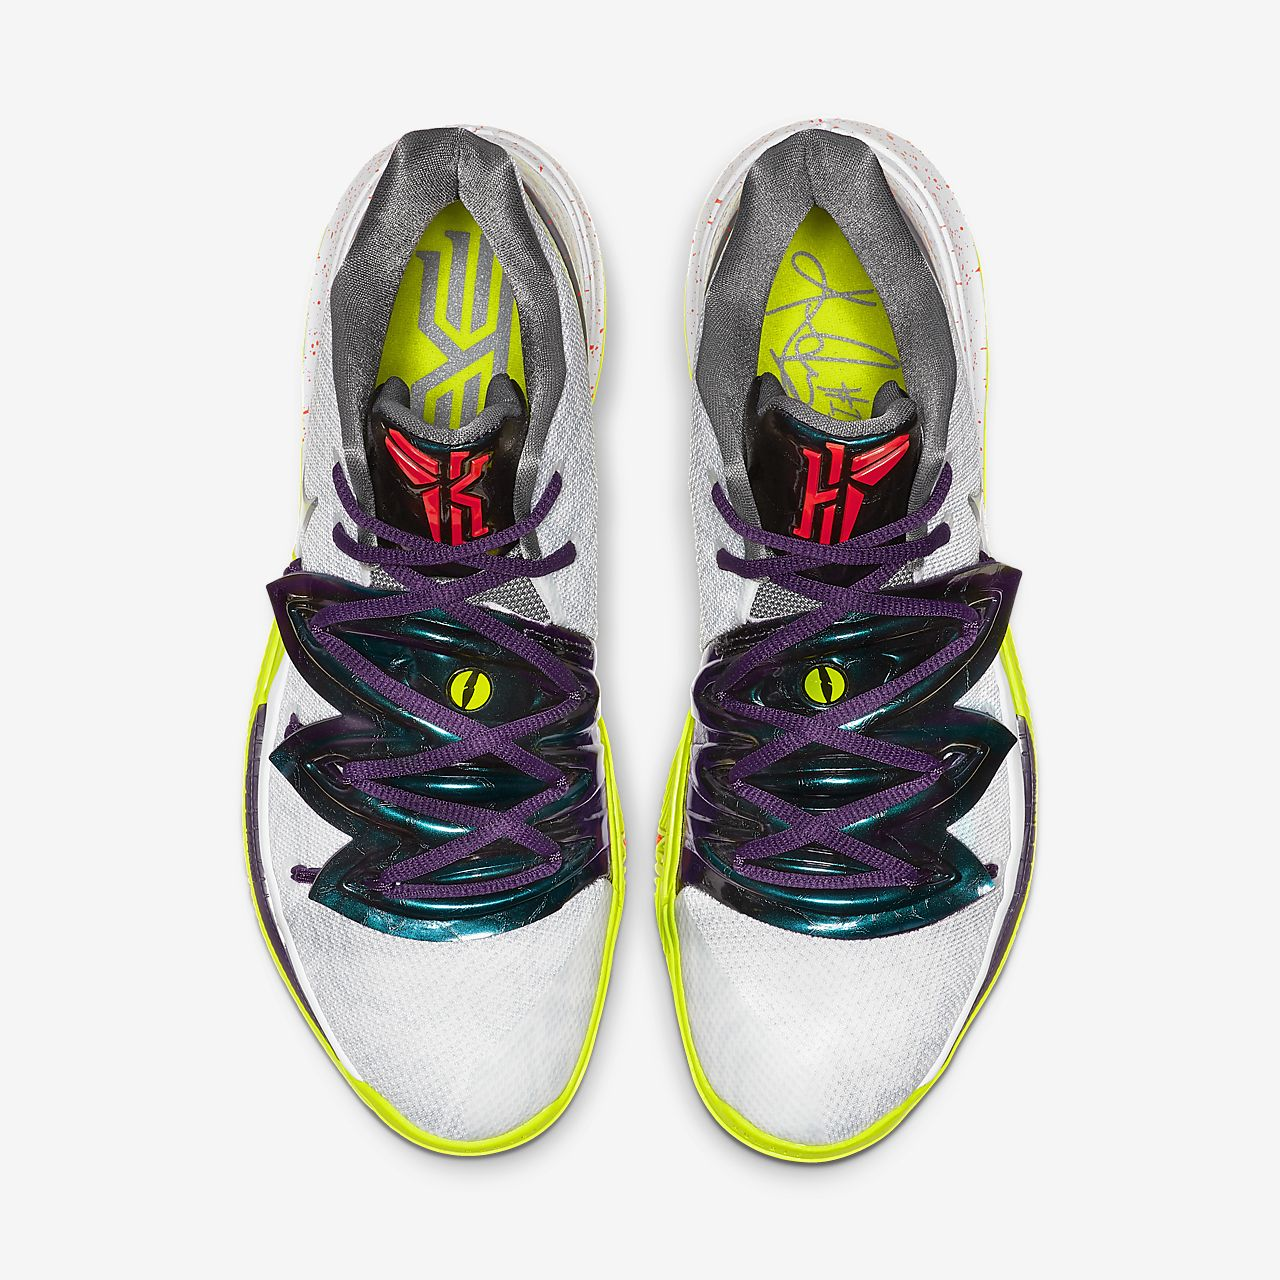 Kyrie 5 EP 'Just Do It' Nike AO2919 003 GOAT